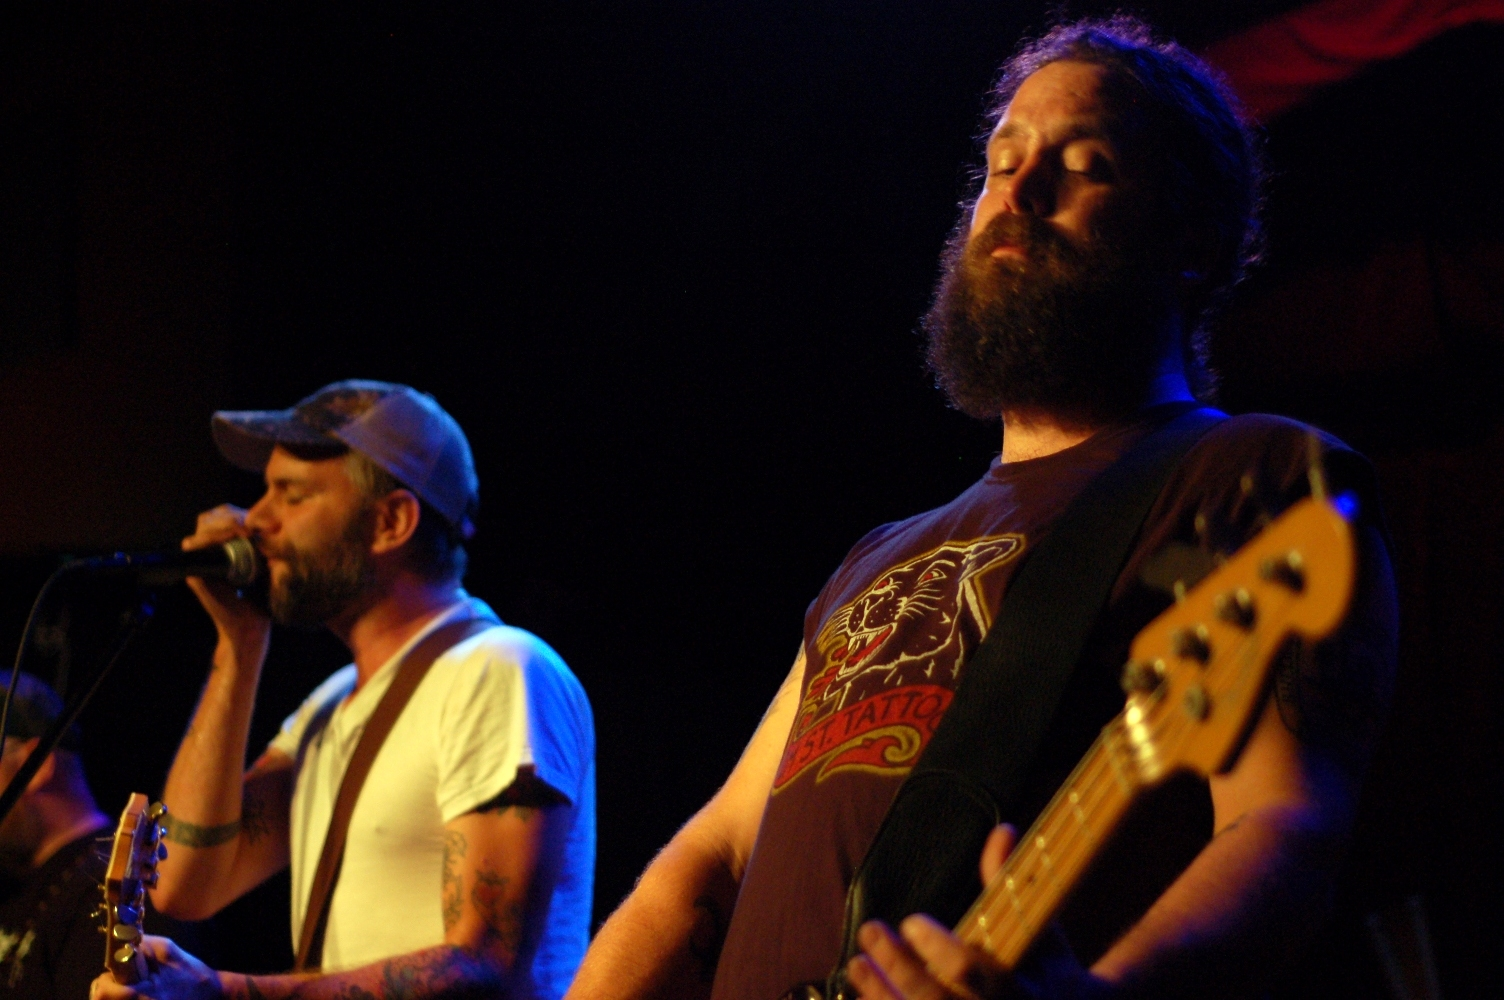 Lucero @ High Noon Saloon, July 30th